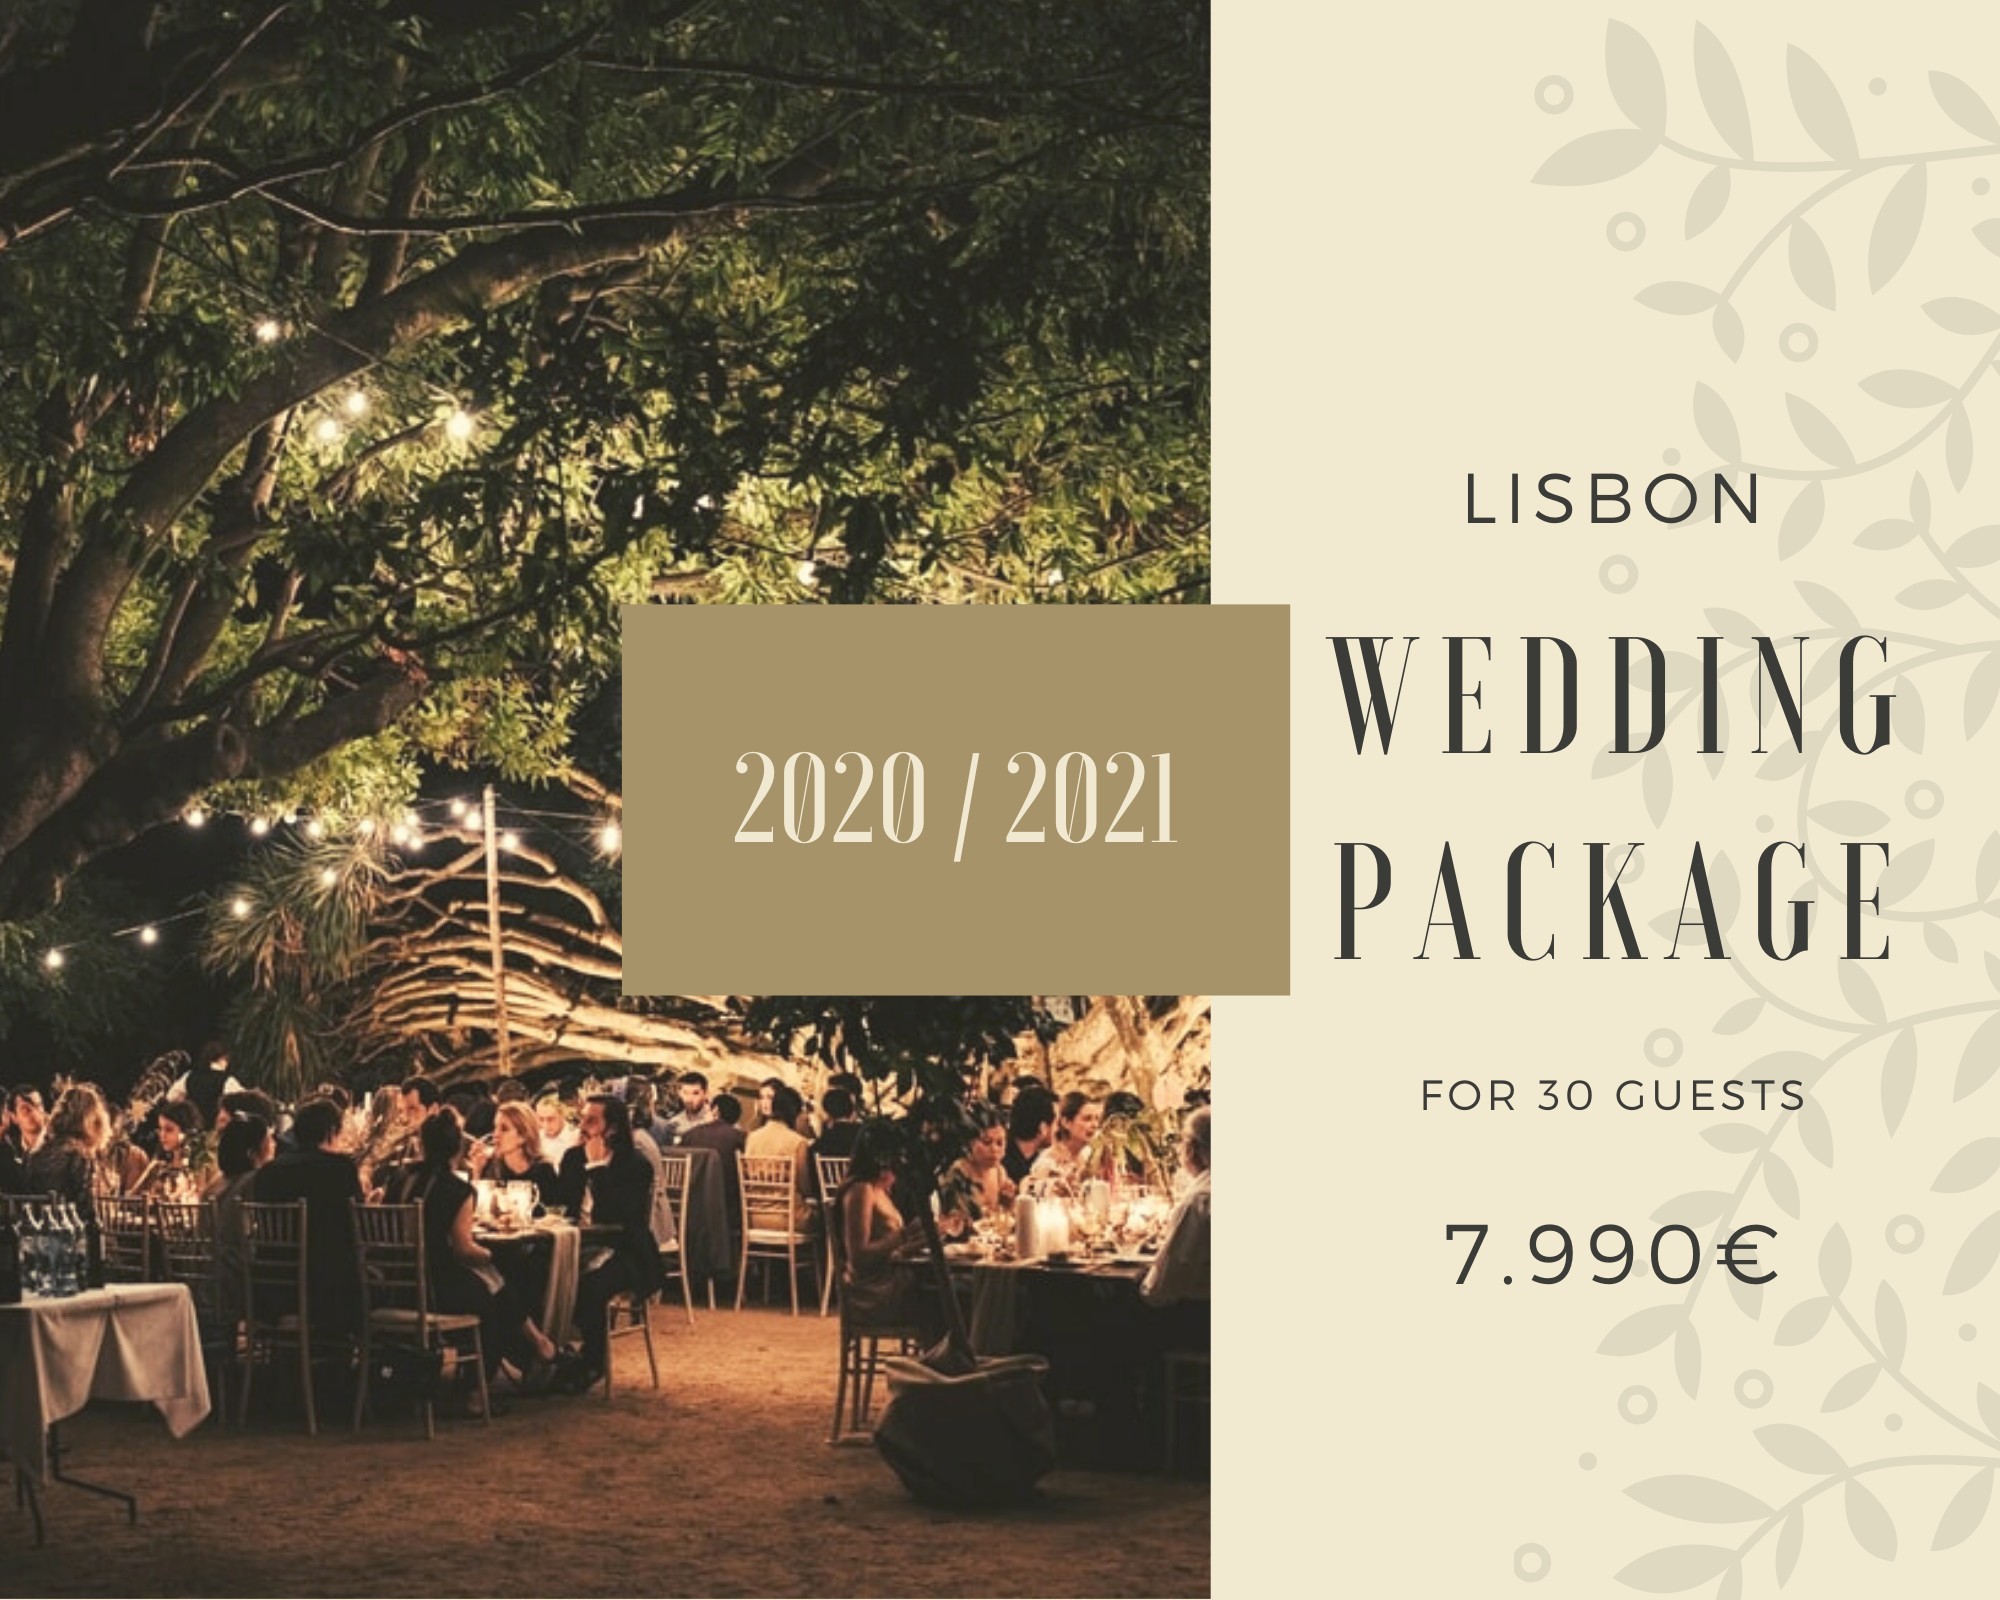 Lisbon Wedding Package 30 guests